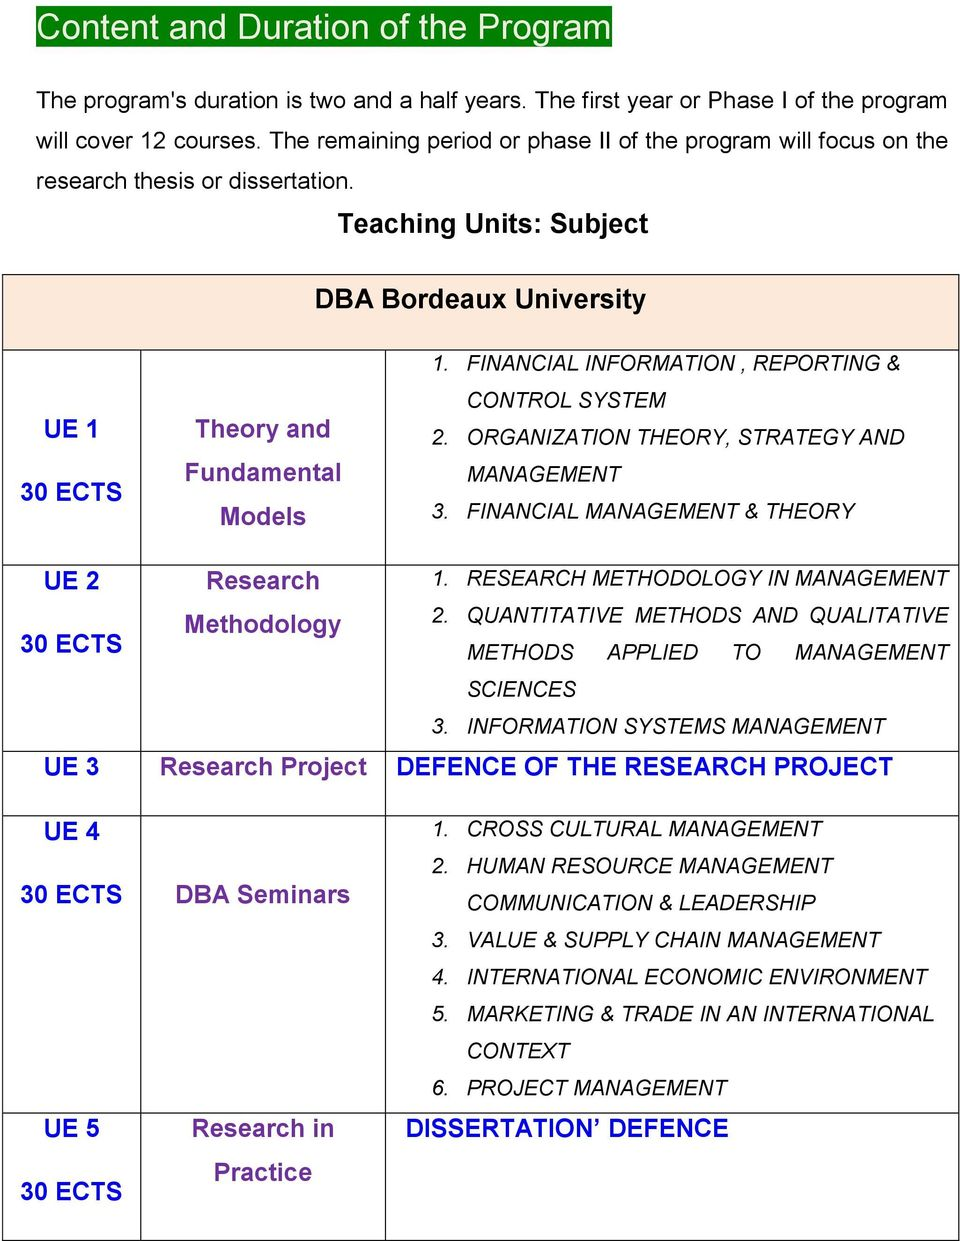 Teaching Units: Subject DBA Bordeaux University UE 1 UE 2 UE 3 Theory and Fundamental Models Research Methodology Research Project 1. FINANCIAL INFORMATION, REPORTING & CONTROL SYSTEM 2.